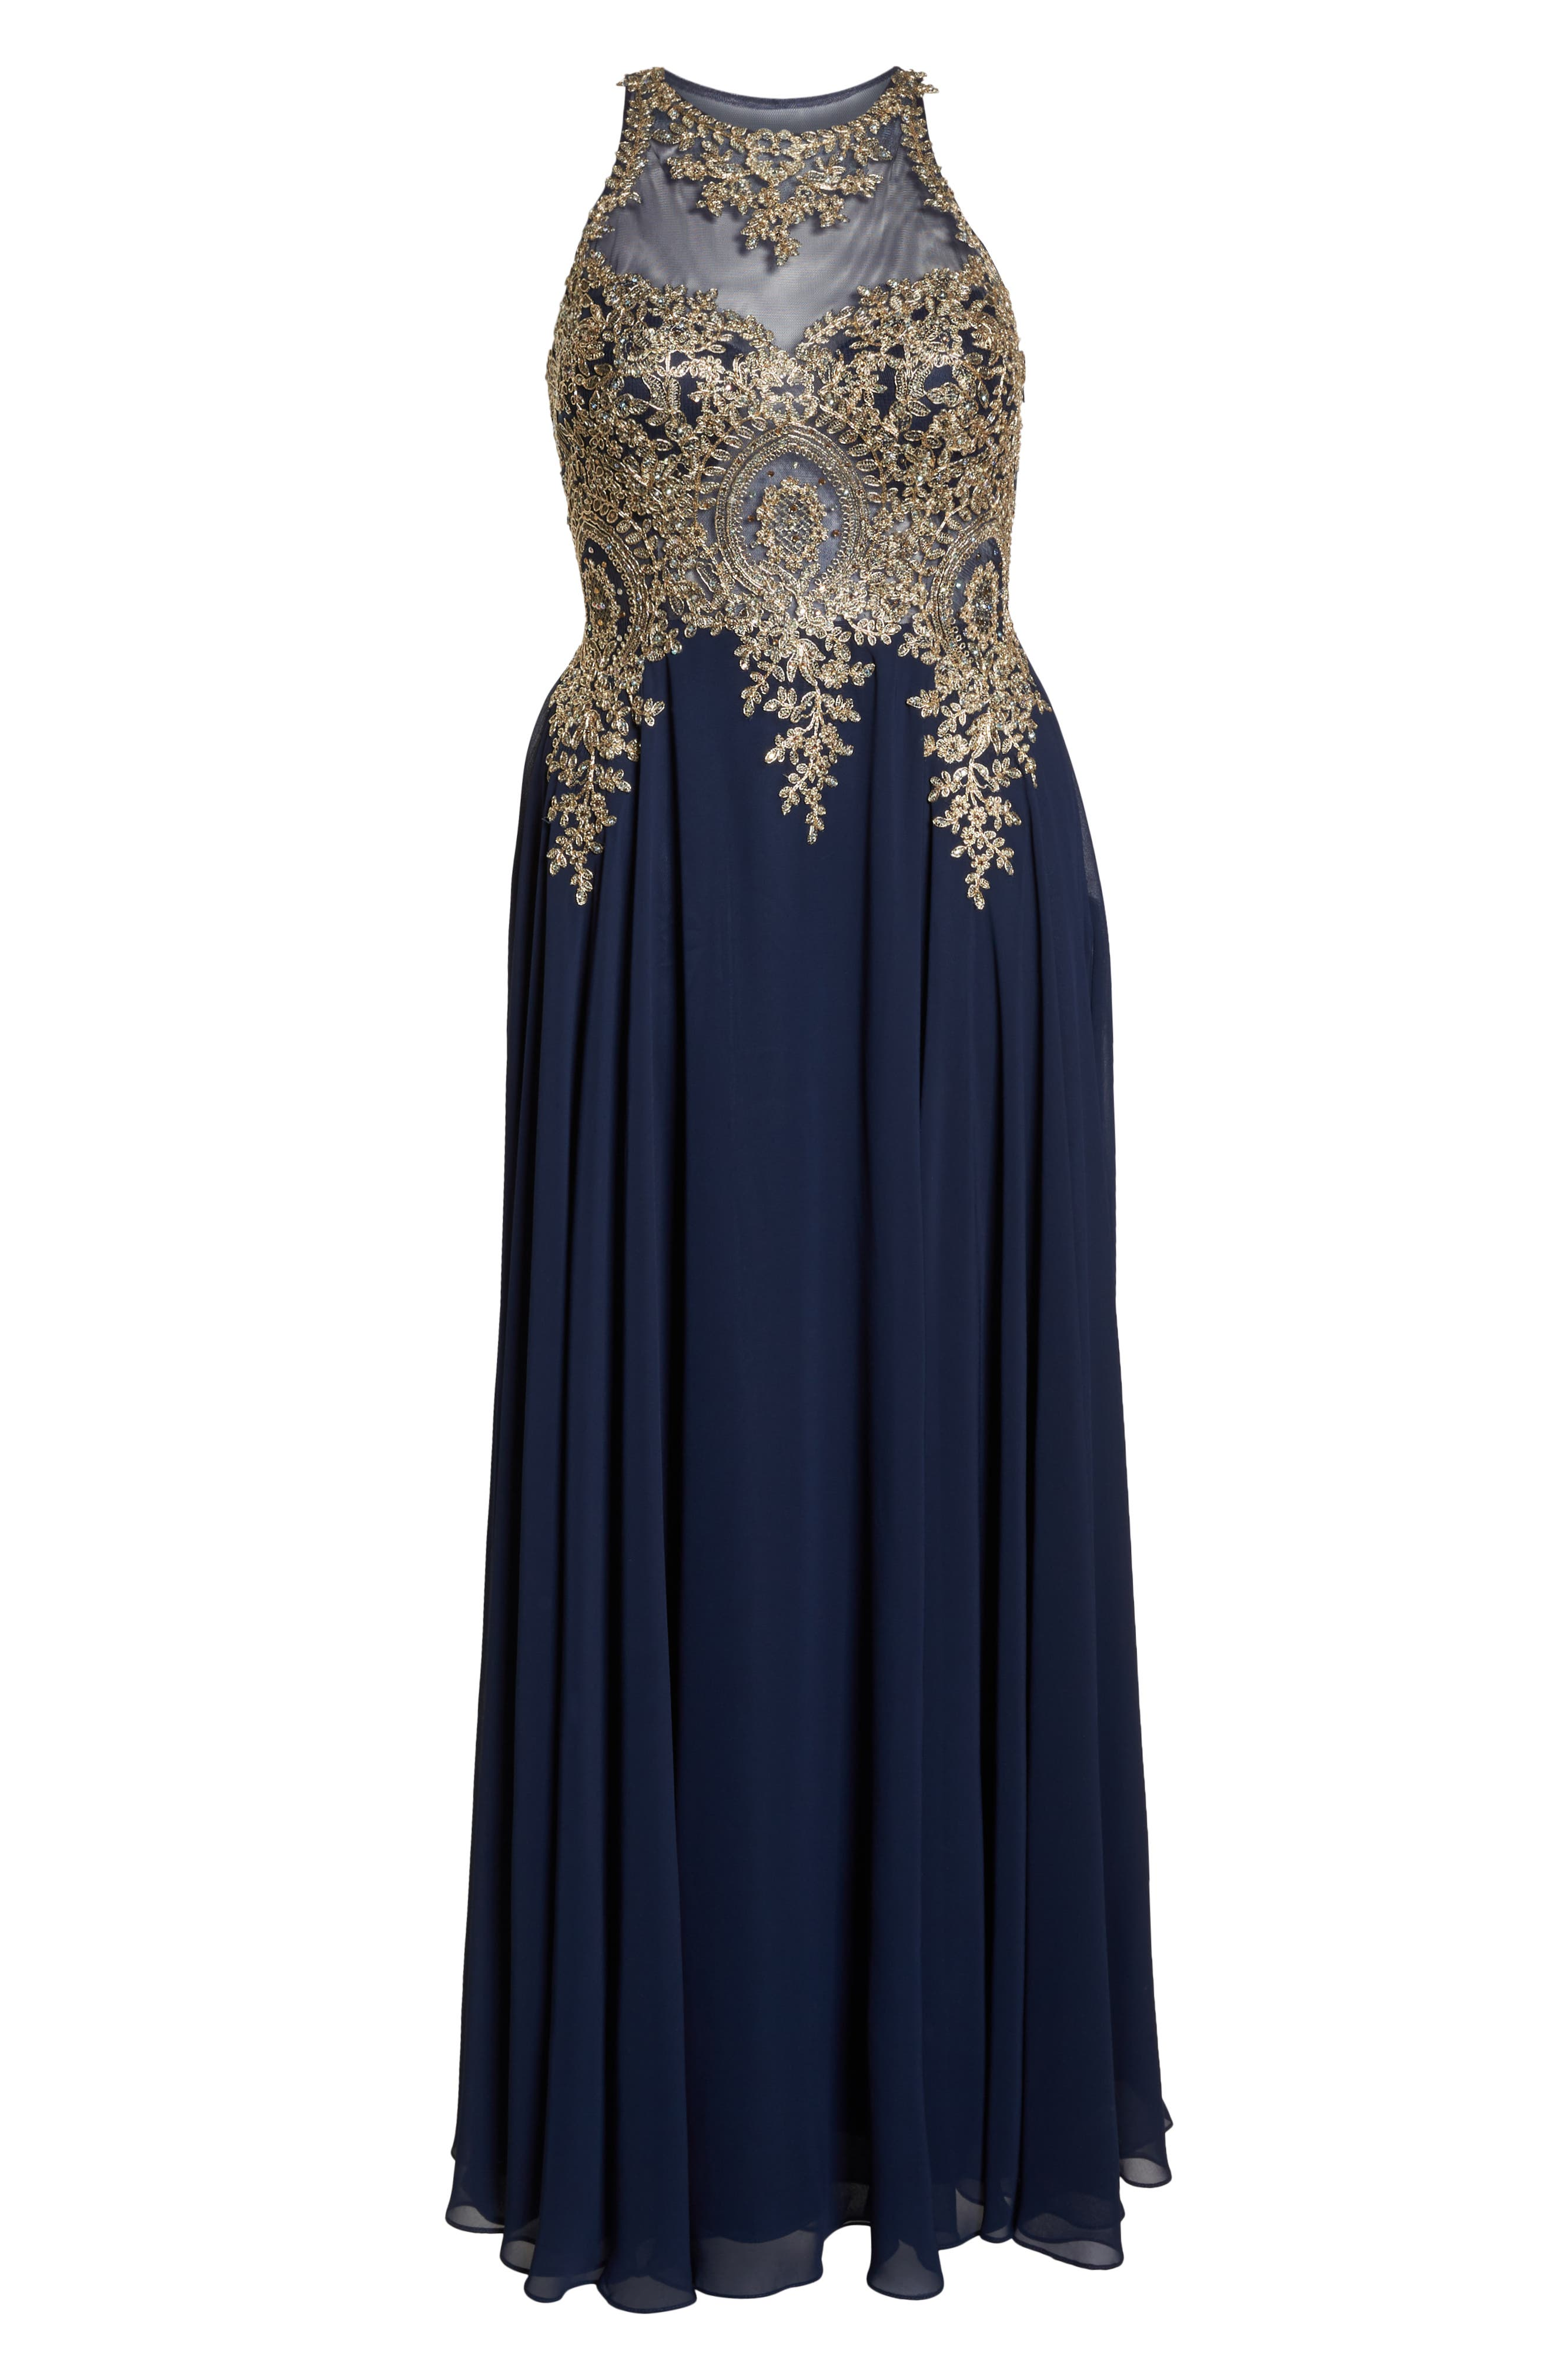 XSCAPE, Metallic Embroidered Gown, Alternate thumbnail 8, color, NAVY/ GOLD